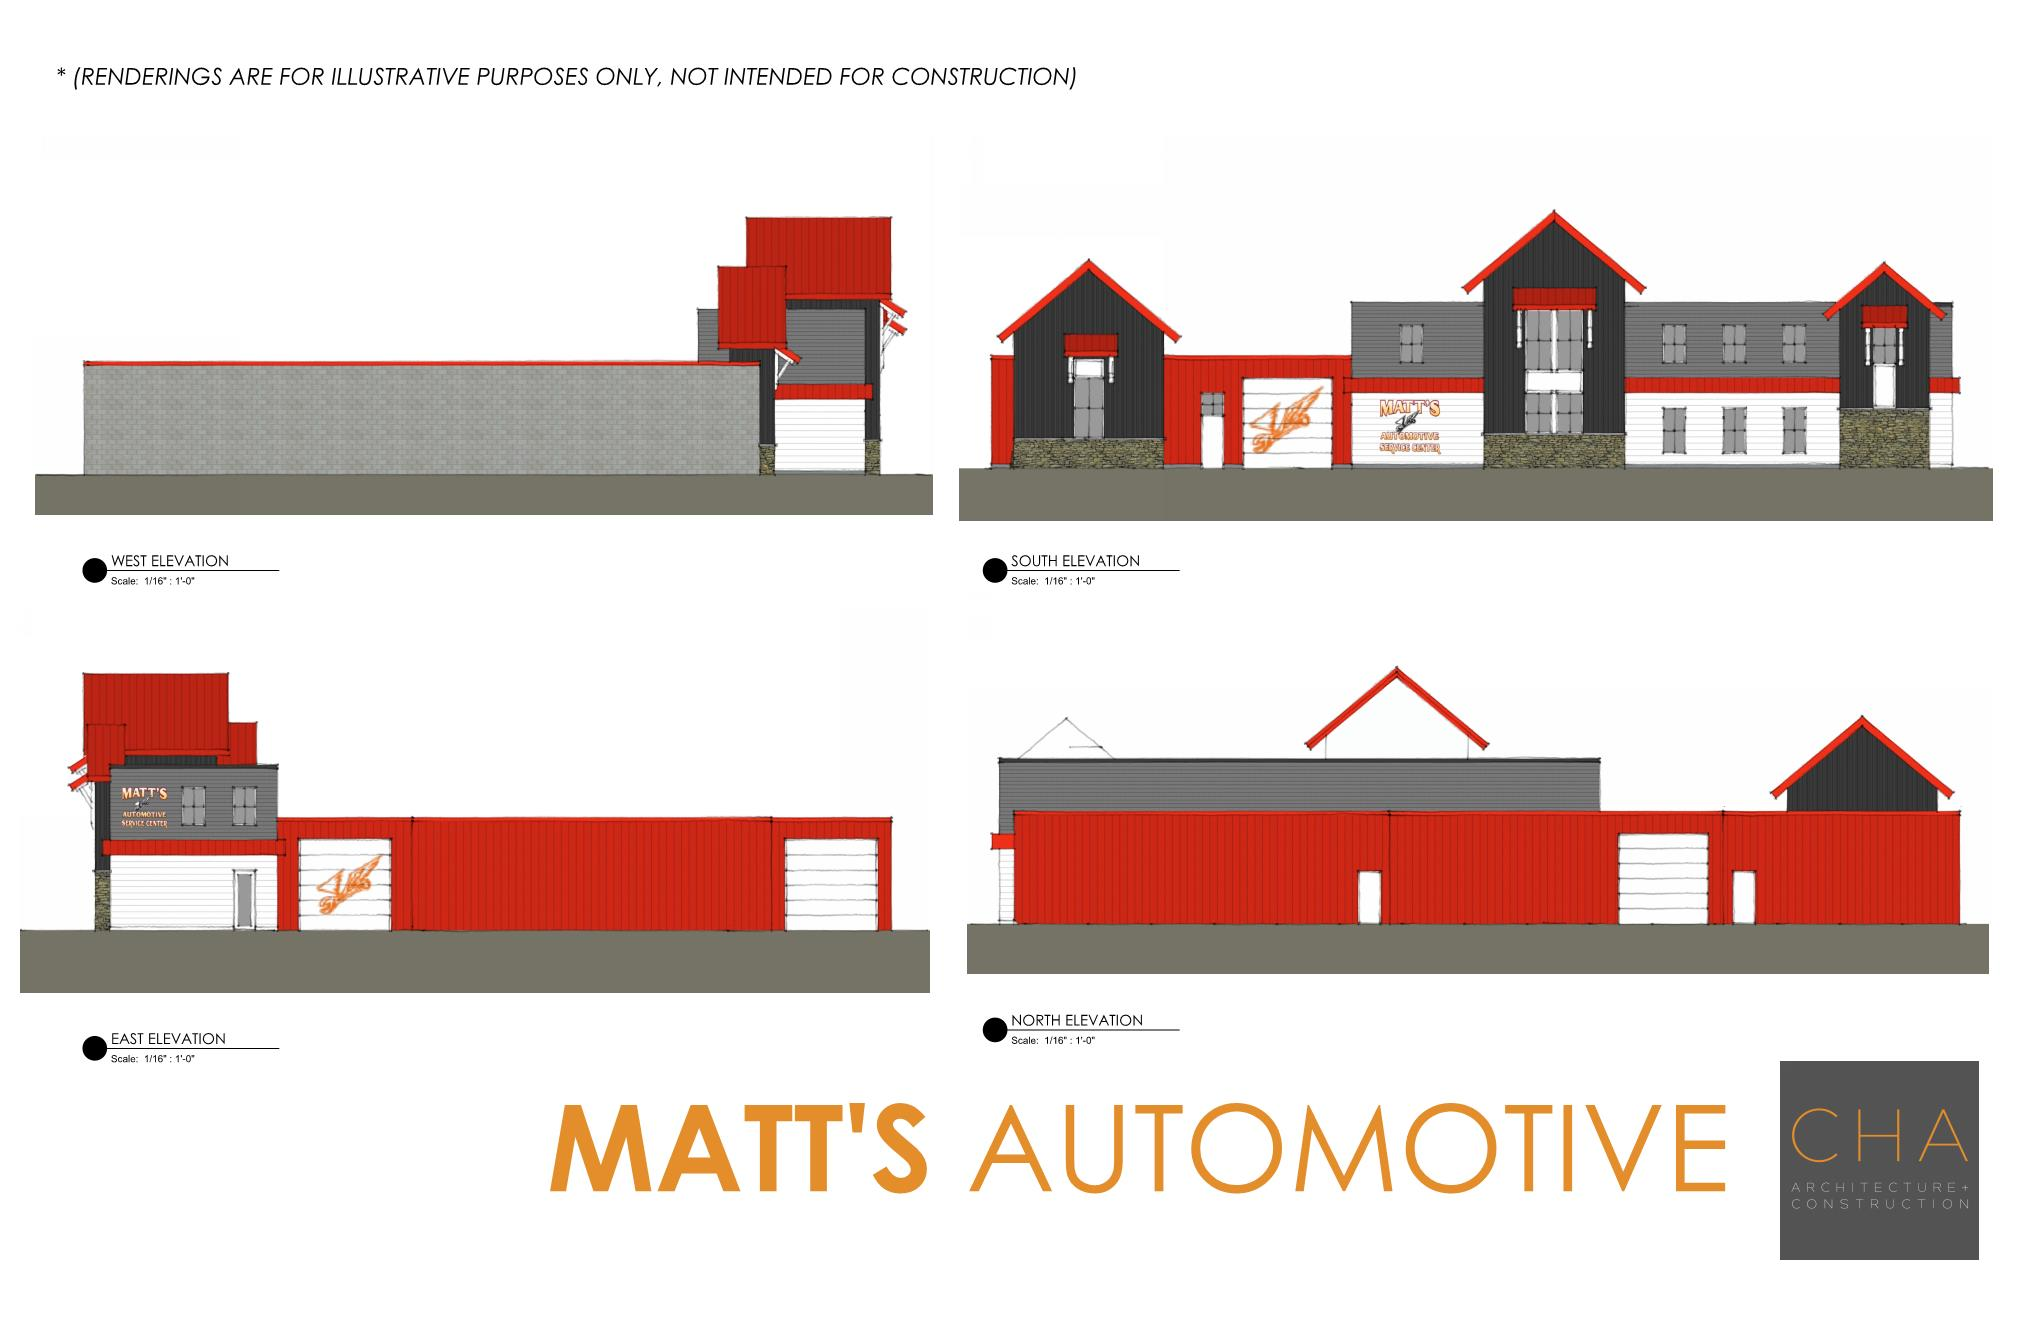 Matt's Automotive Original Rendering